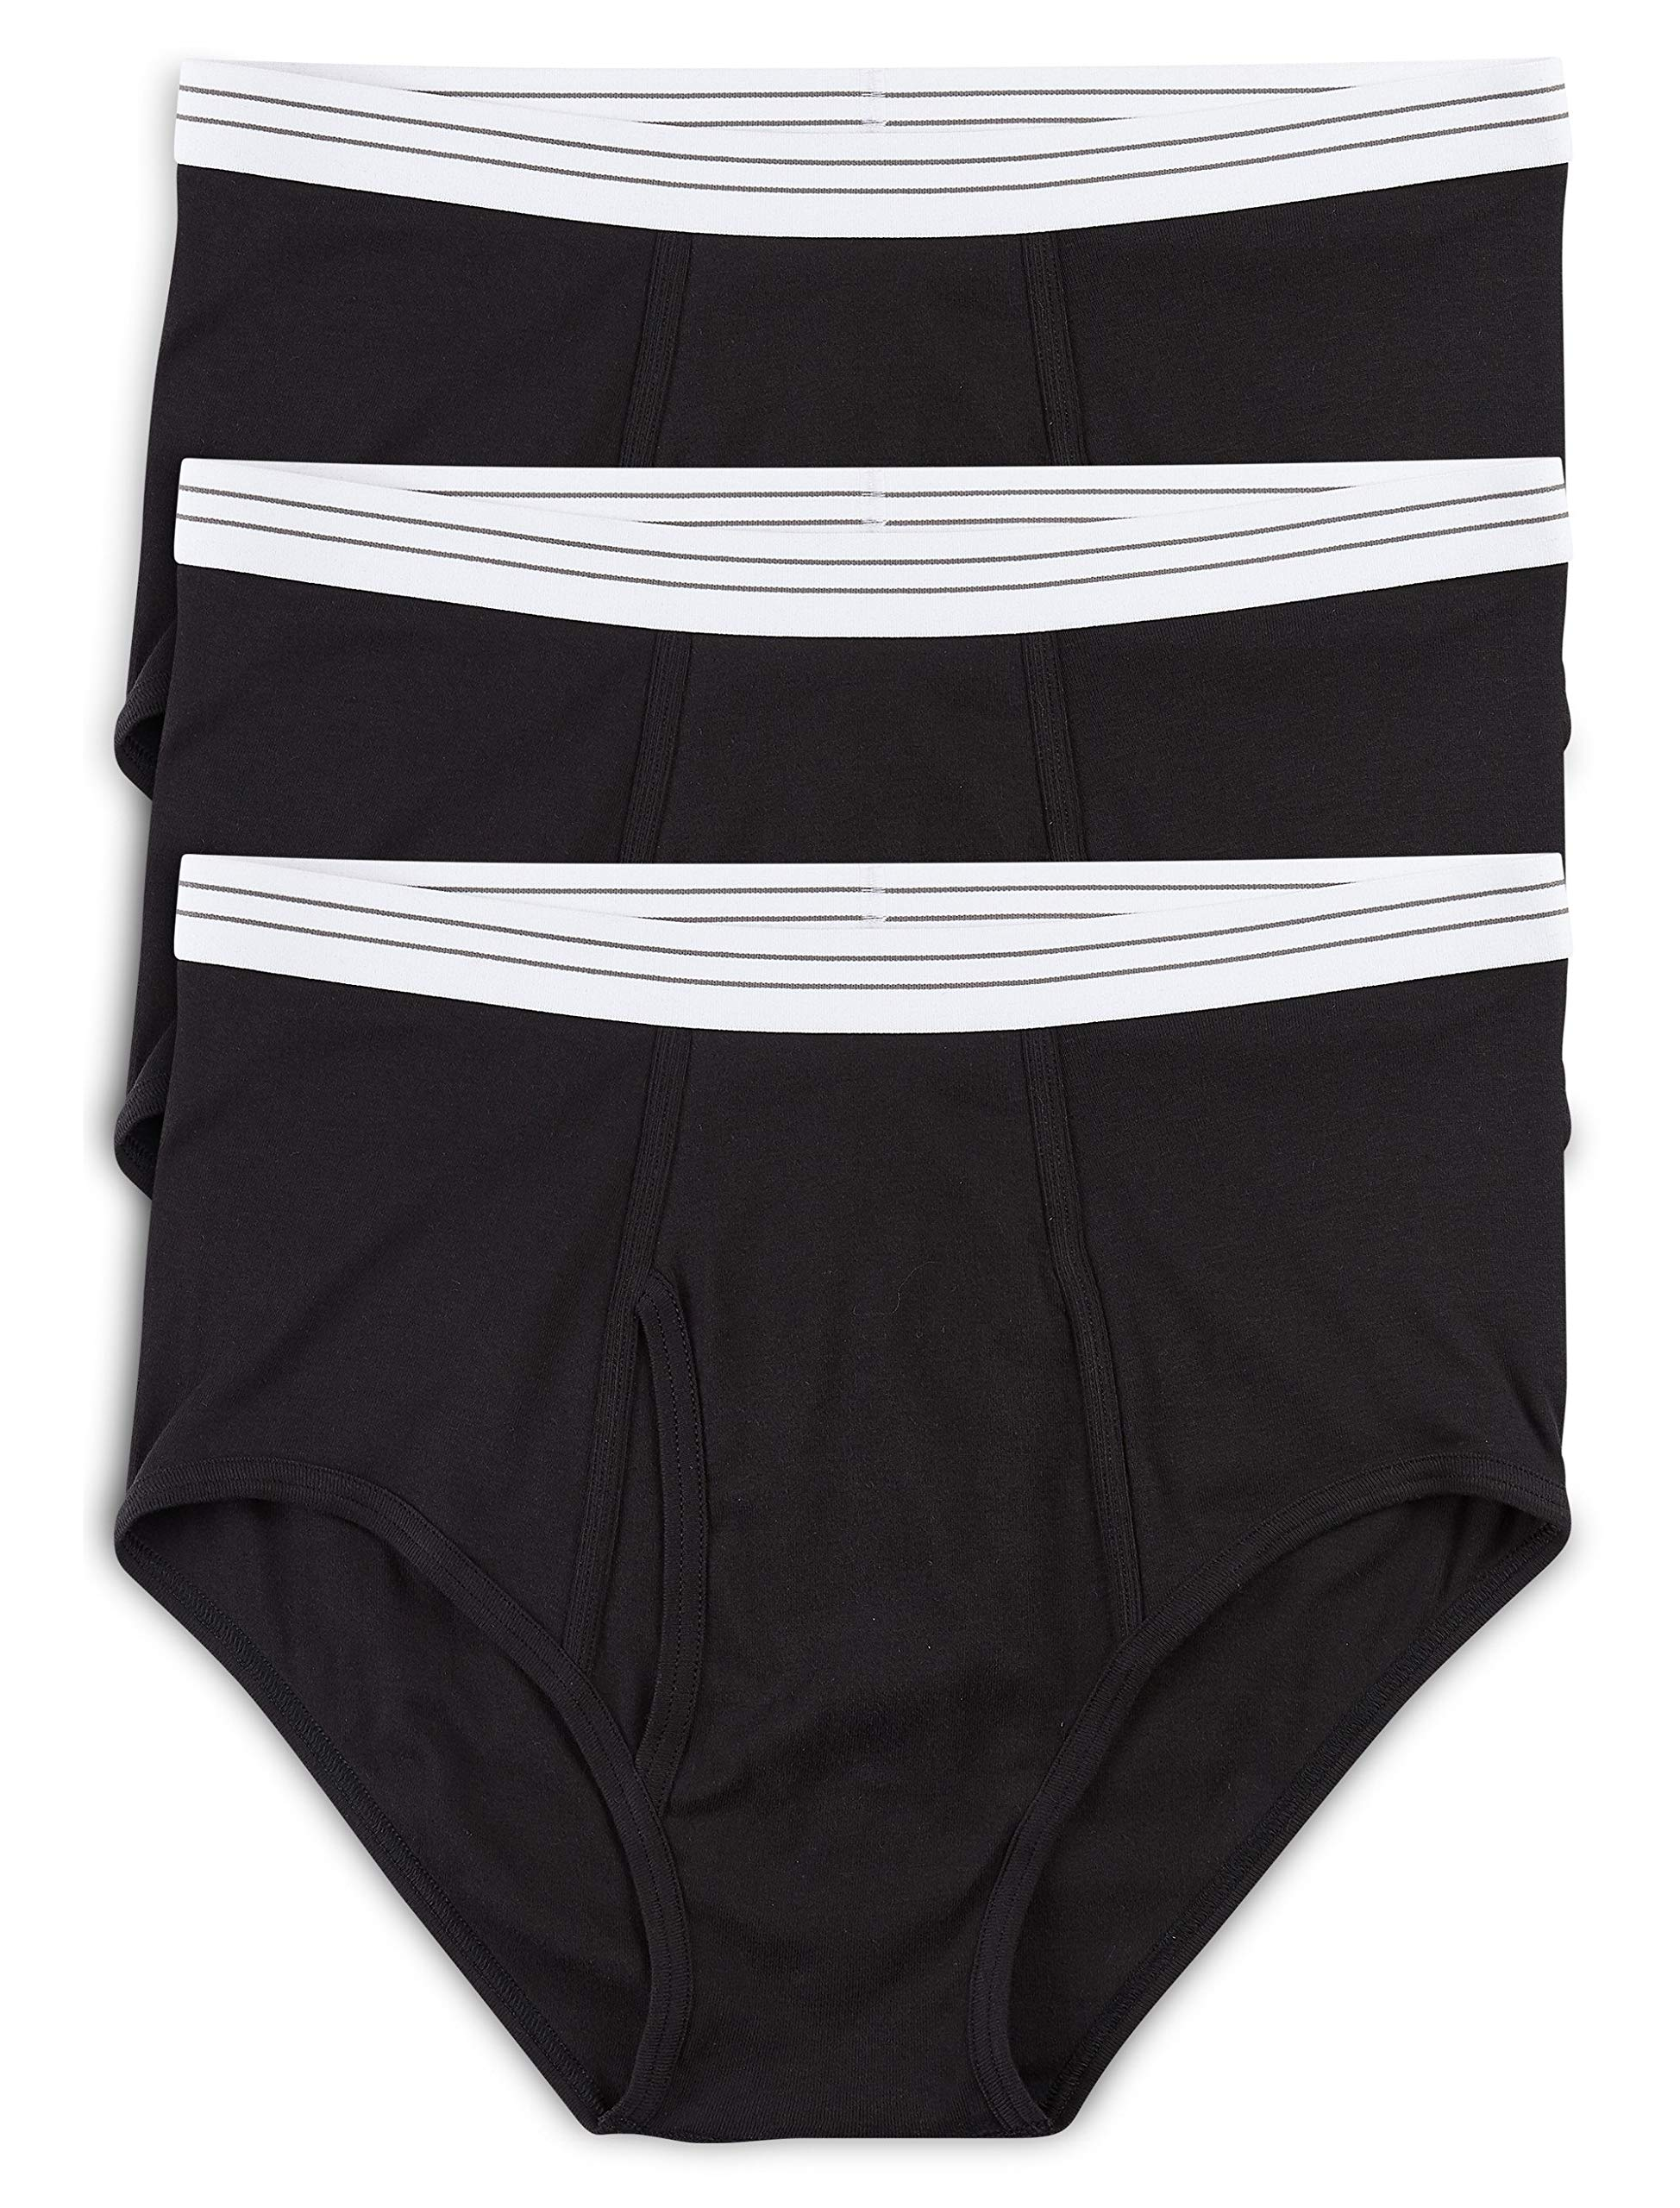 Harbor Bay by DXL Big and Tall Color Briefs, Black 2XL, Pack of 3 by Harbor Bay